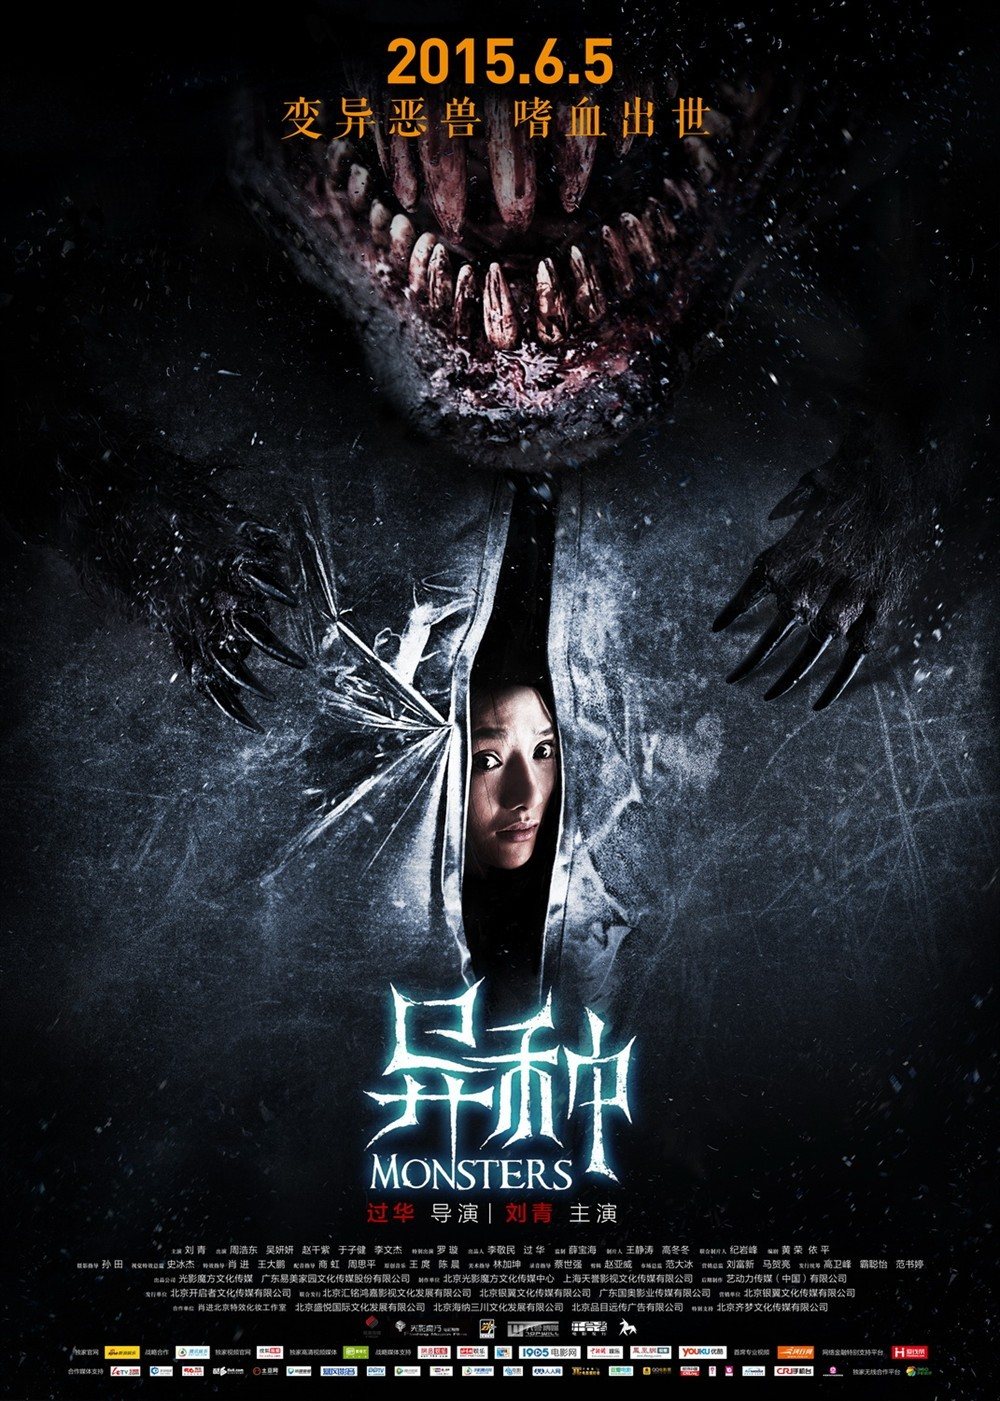 monster-Yi zhong-poster3 | Undead Backbrain